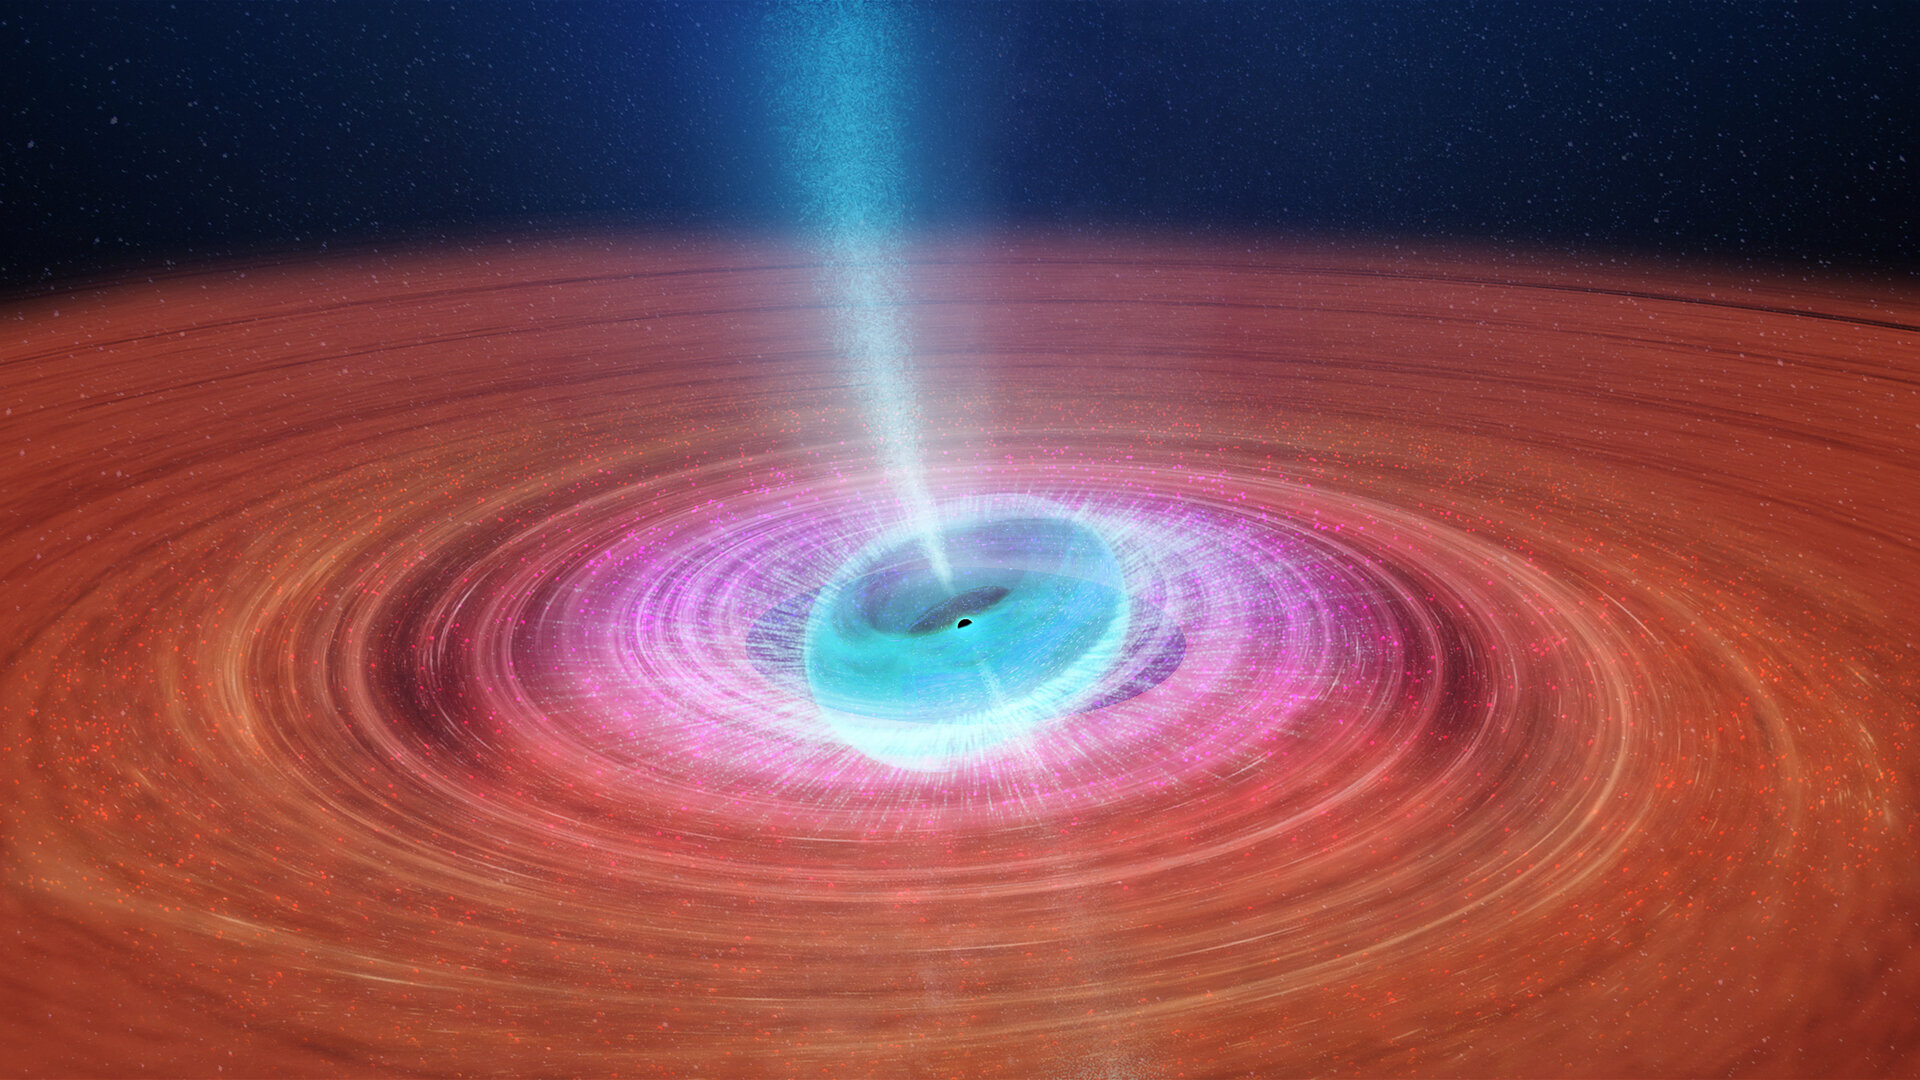 Tilted black hole accretion disc